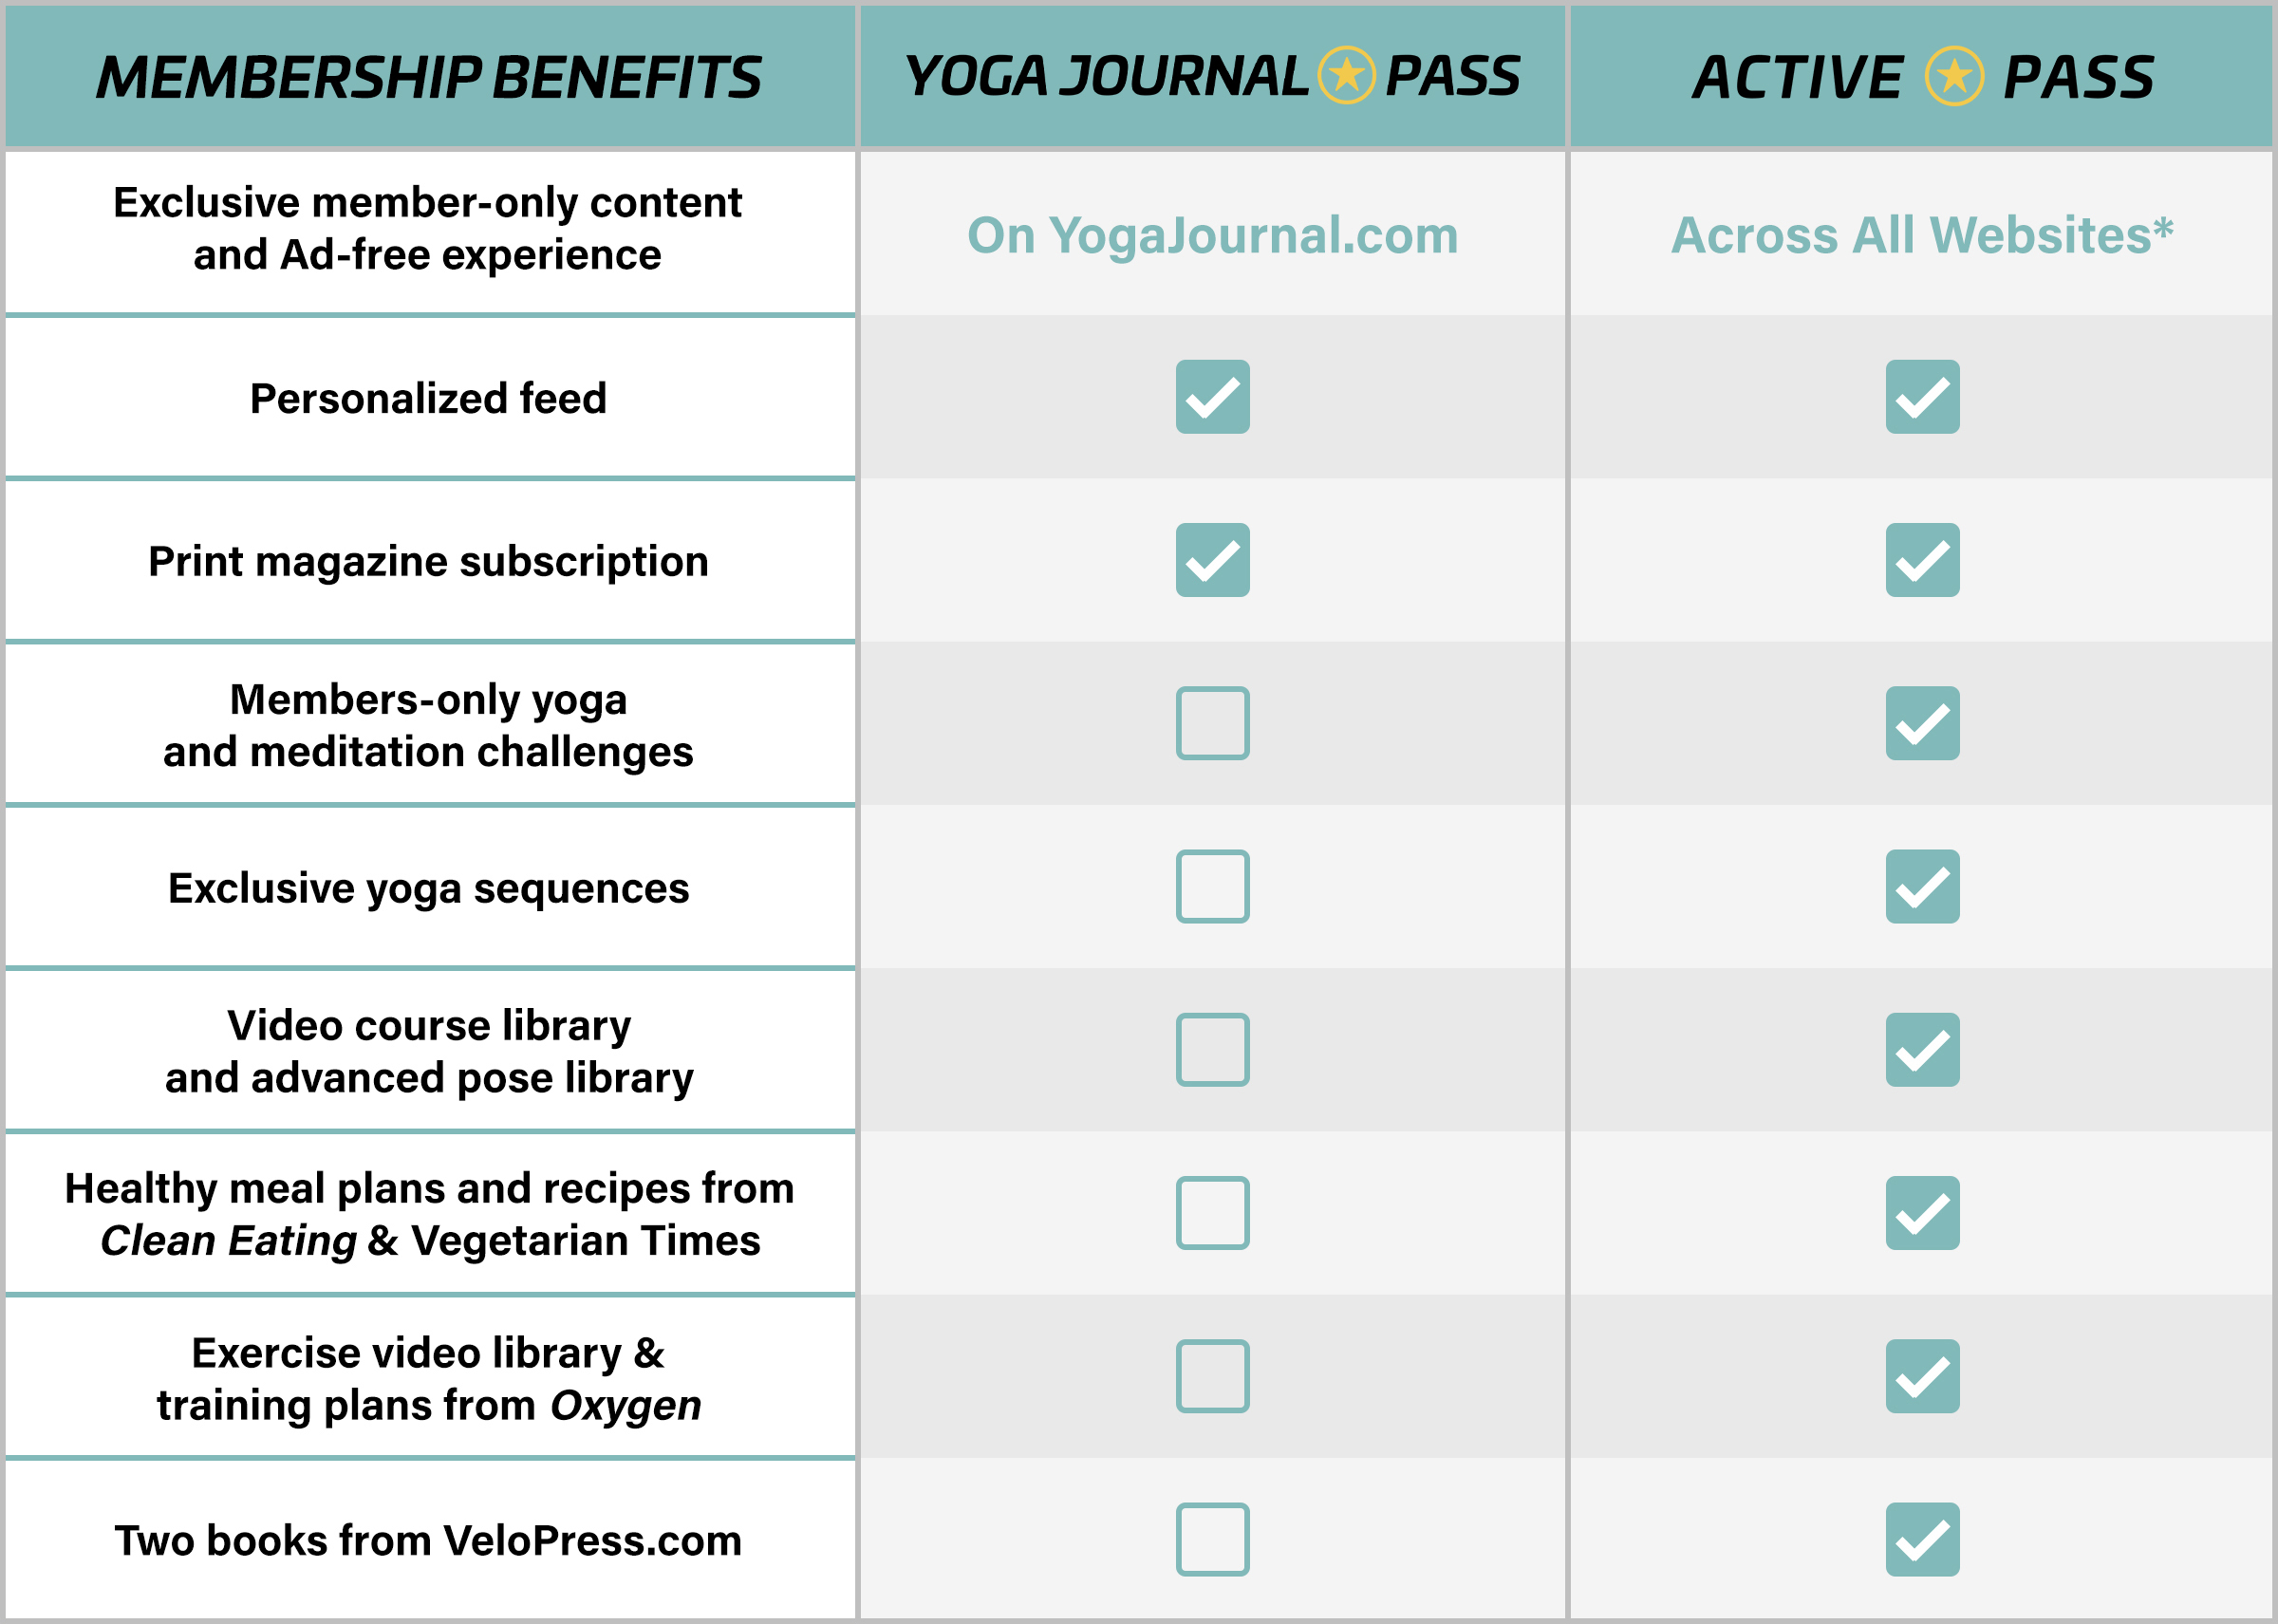 Yoga Journal Pass | Active Pass Member Benefits